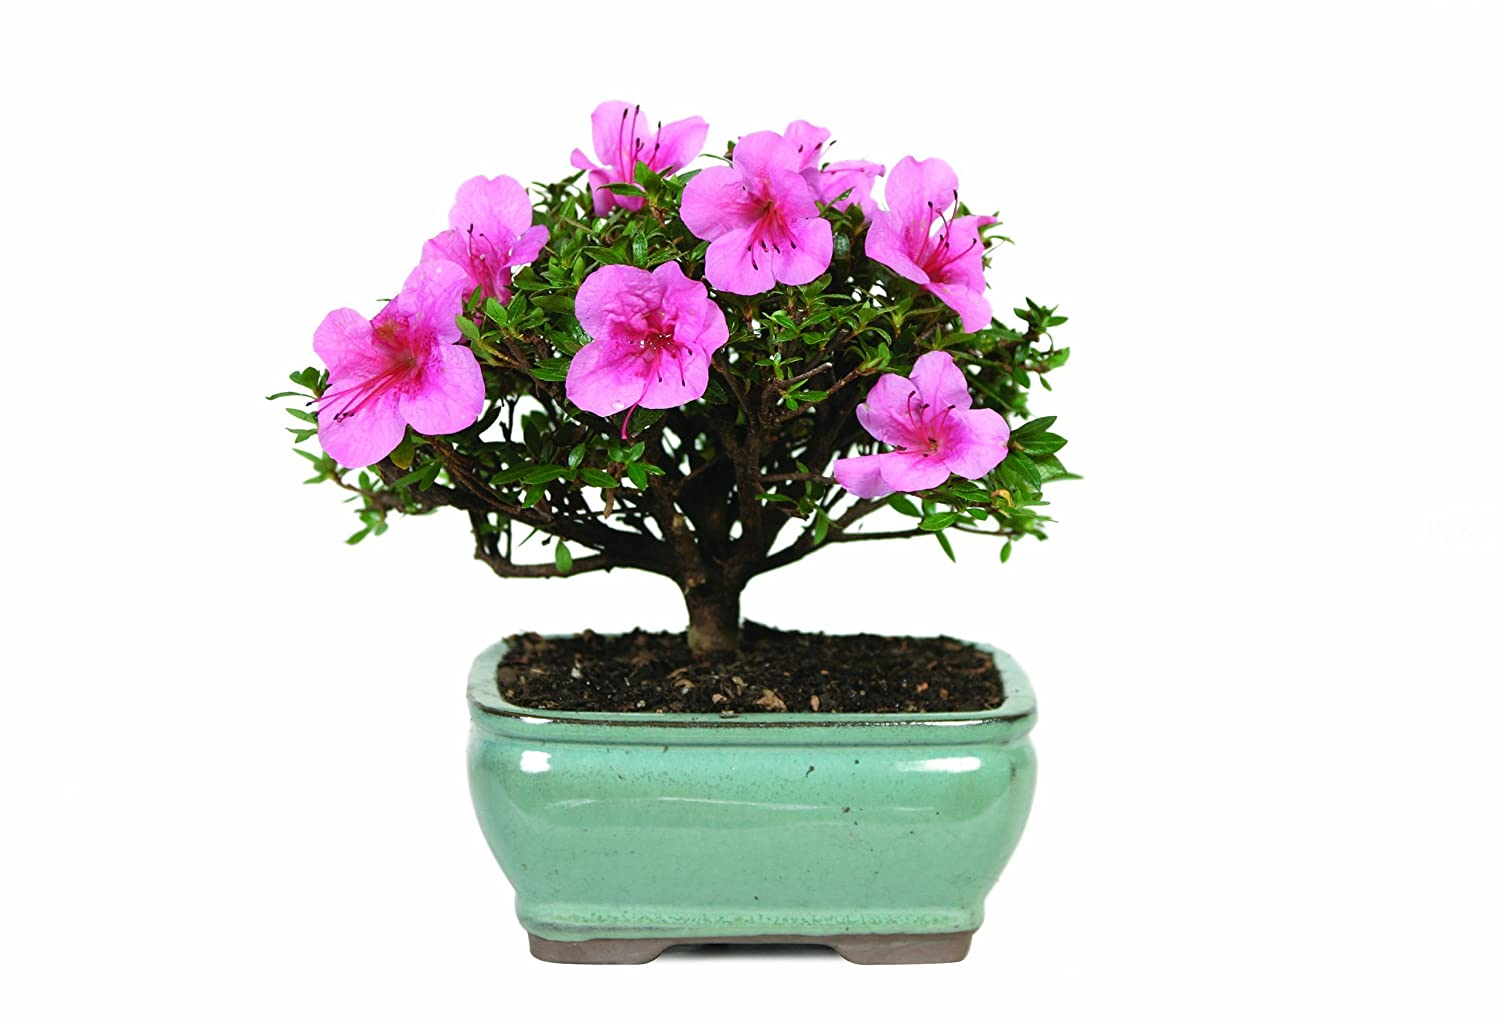 Flowering Plants - Azalea